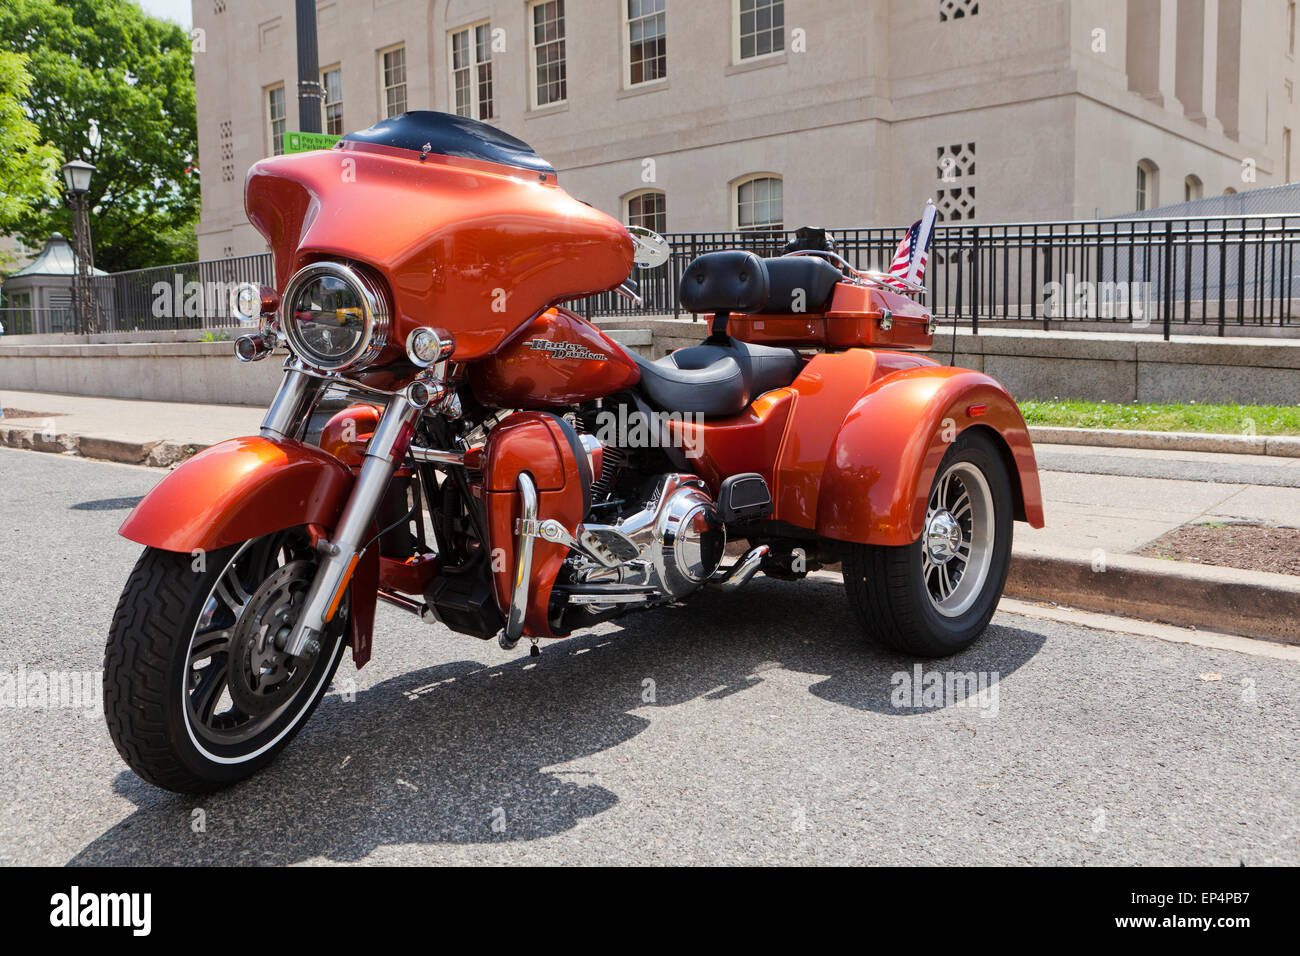 harley davidson trike stockfotos harley davidson trike bilder alamy. Black Bedroom Furniture Sets. Home Design Ideas